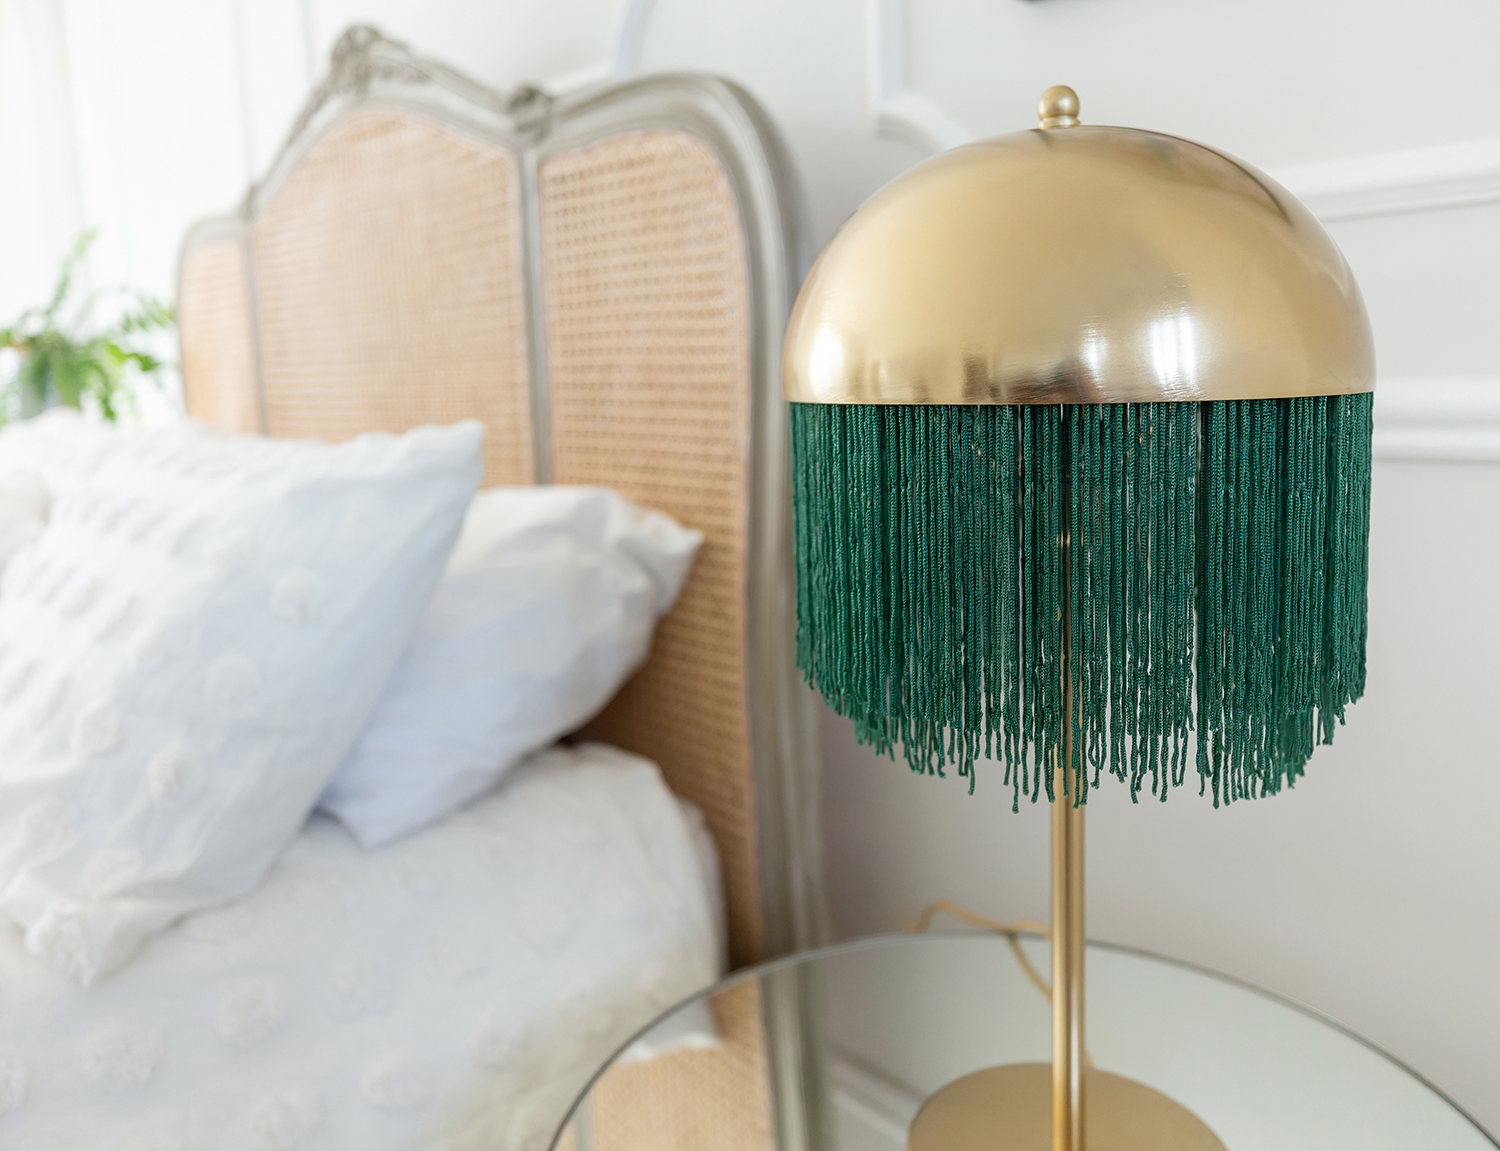 Emerald Green Fringed Table Light, £195 ($247), The French Bedroom Company, International Delivery